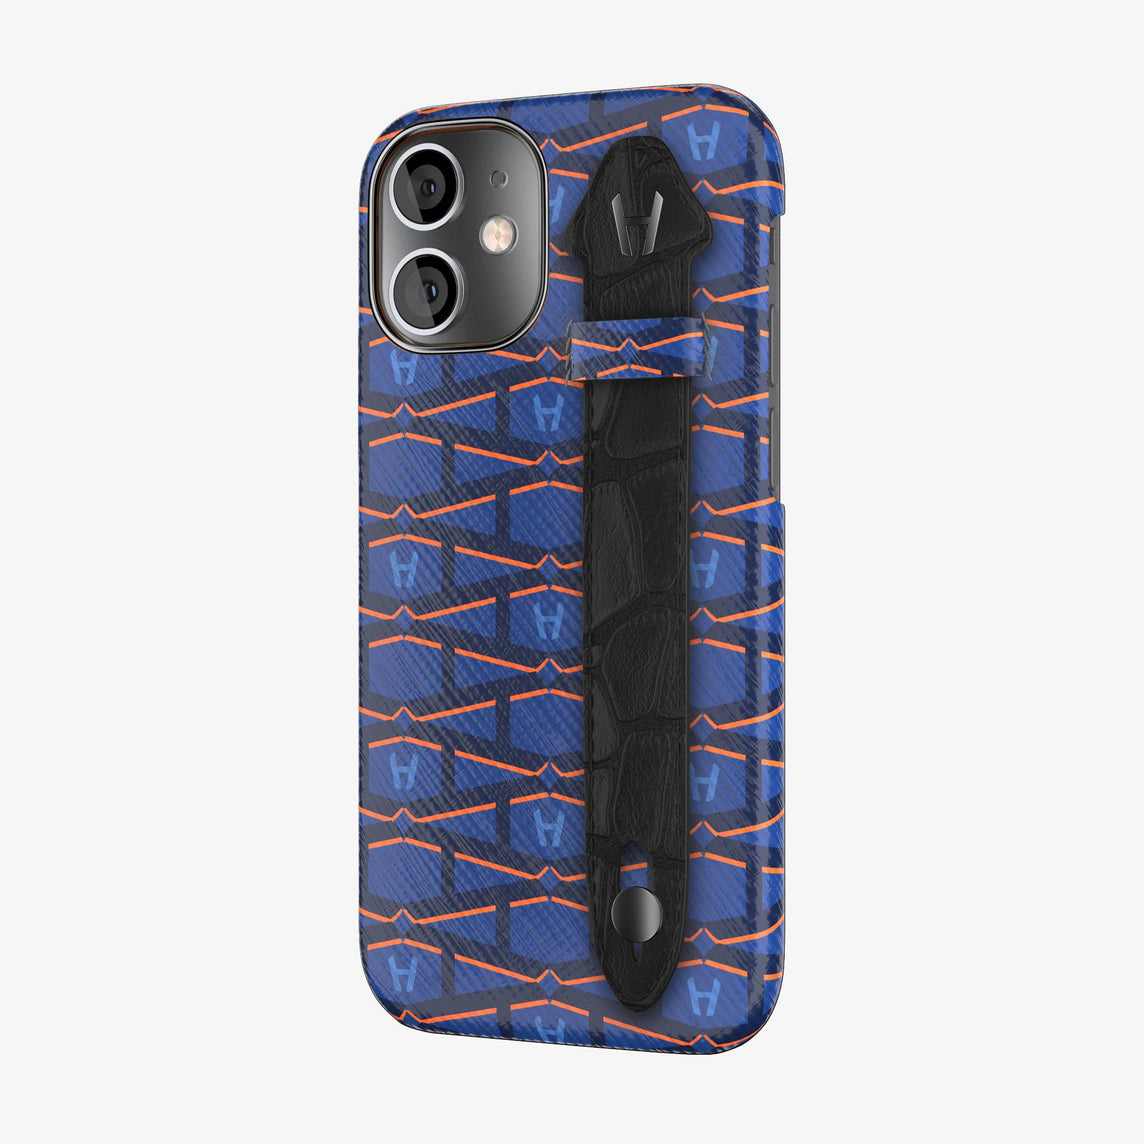 Monogram Side Finger Case iPhone 12 Mini | Navy Blue/Alligator Black - Black